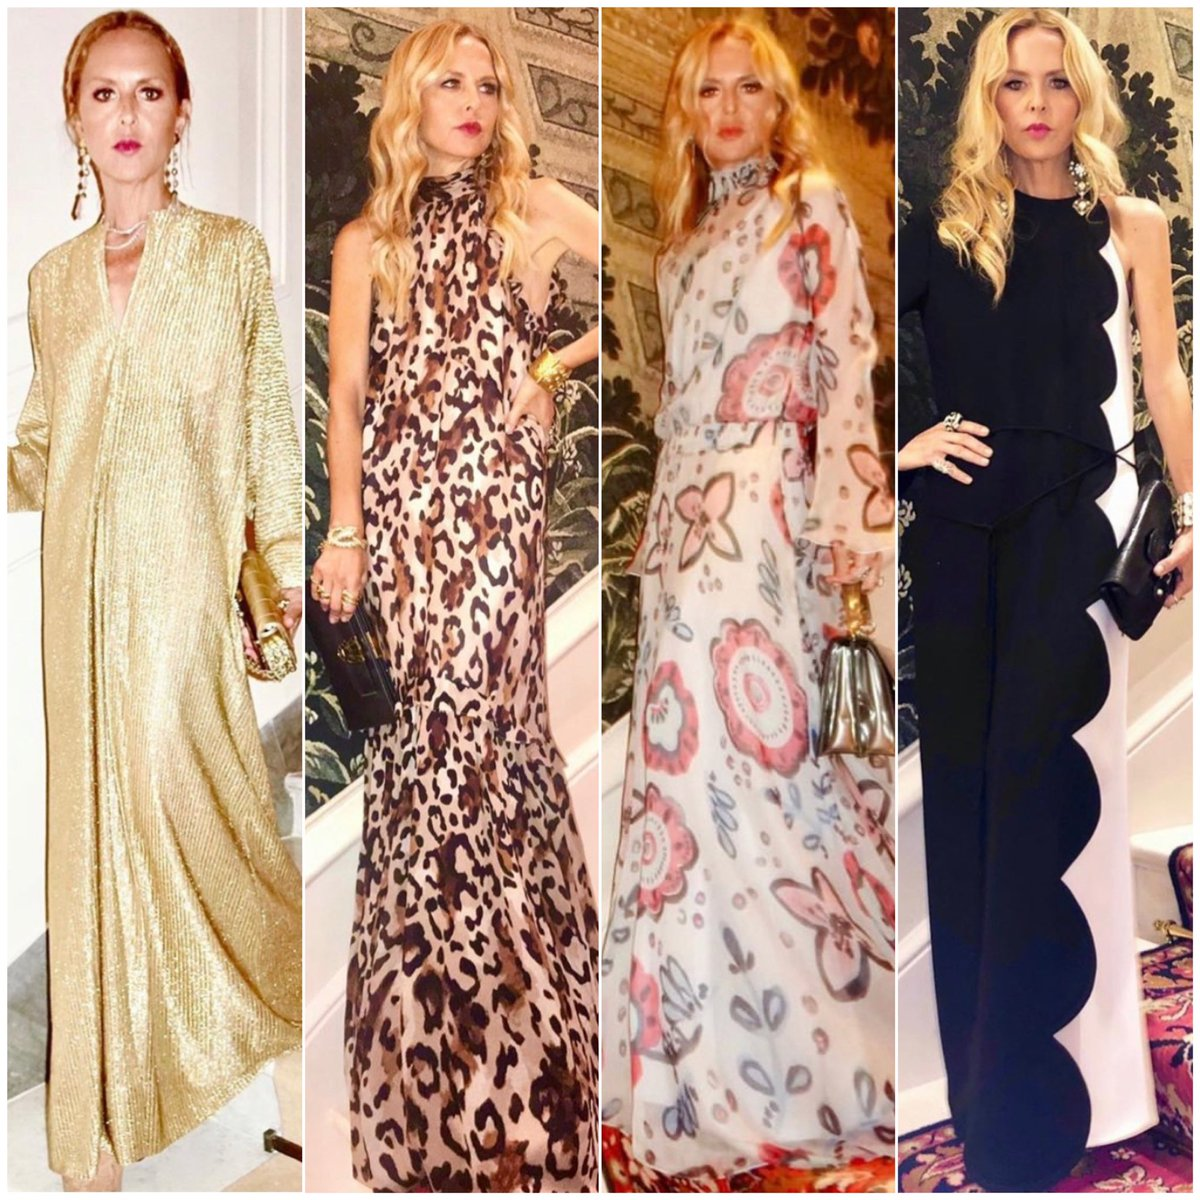 This time 1 year ago..a few of many changes for #Paris #hautecouture week ... I miss you  XoRZ pic.twitter.com/Ad4pAXCeRC